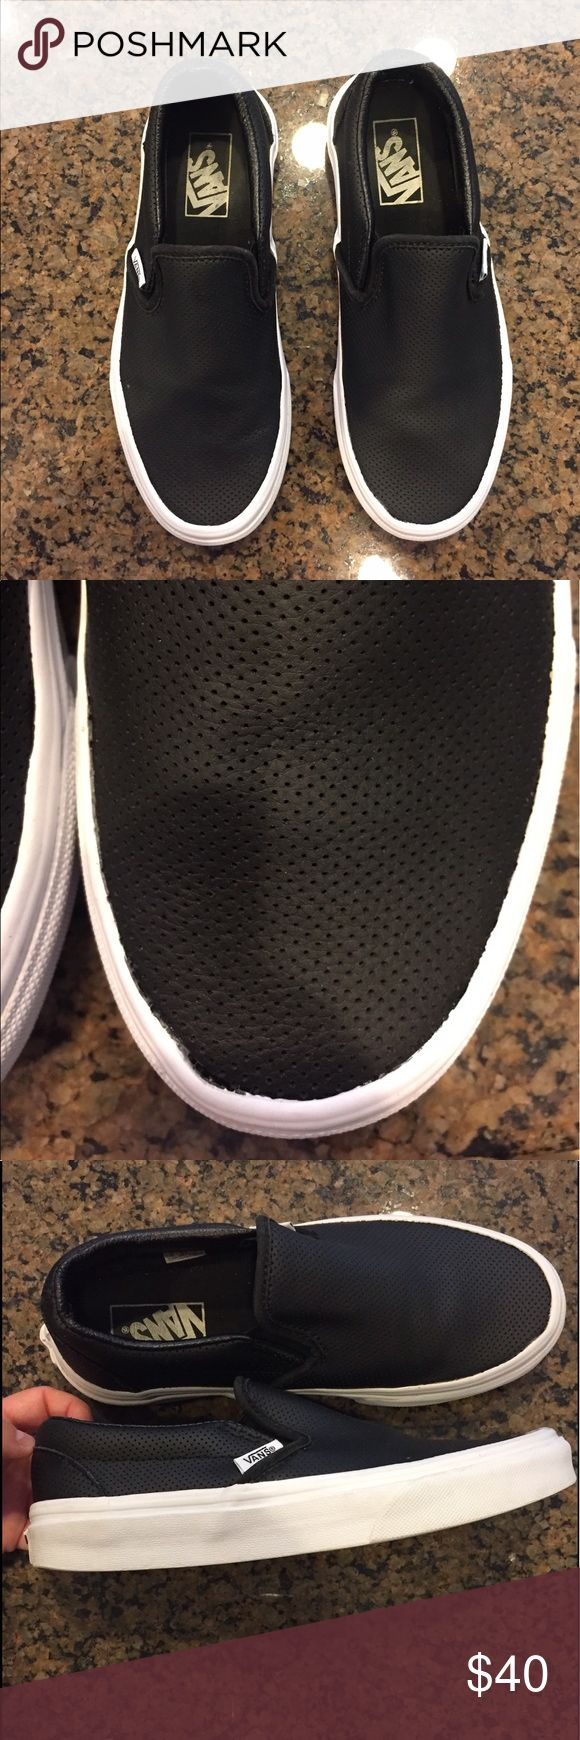 Black perforated fake leather vans These are a closet staple! They are comfy, cute and match everything.  I just need to clean out my shoe closet!! Worn a few times but in great condition. Women's size 6.5 Vans Shoes Sneakers